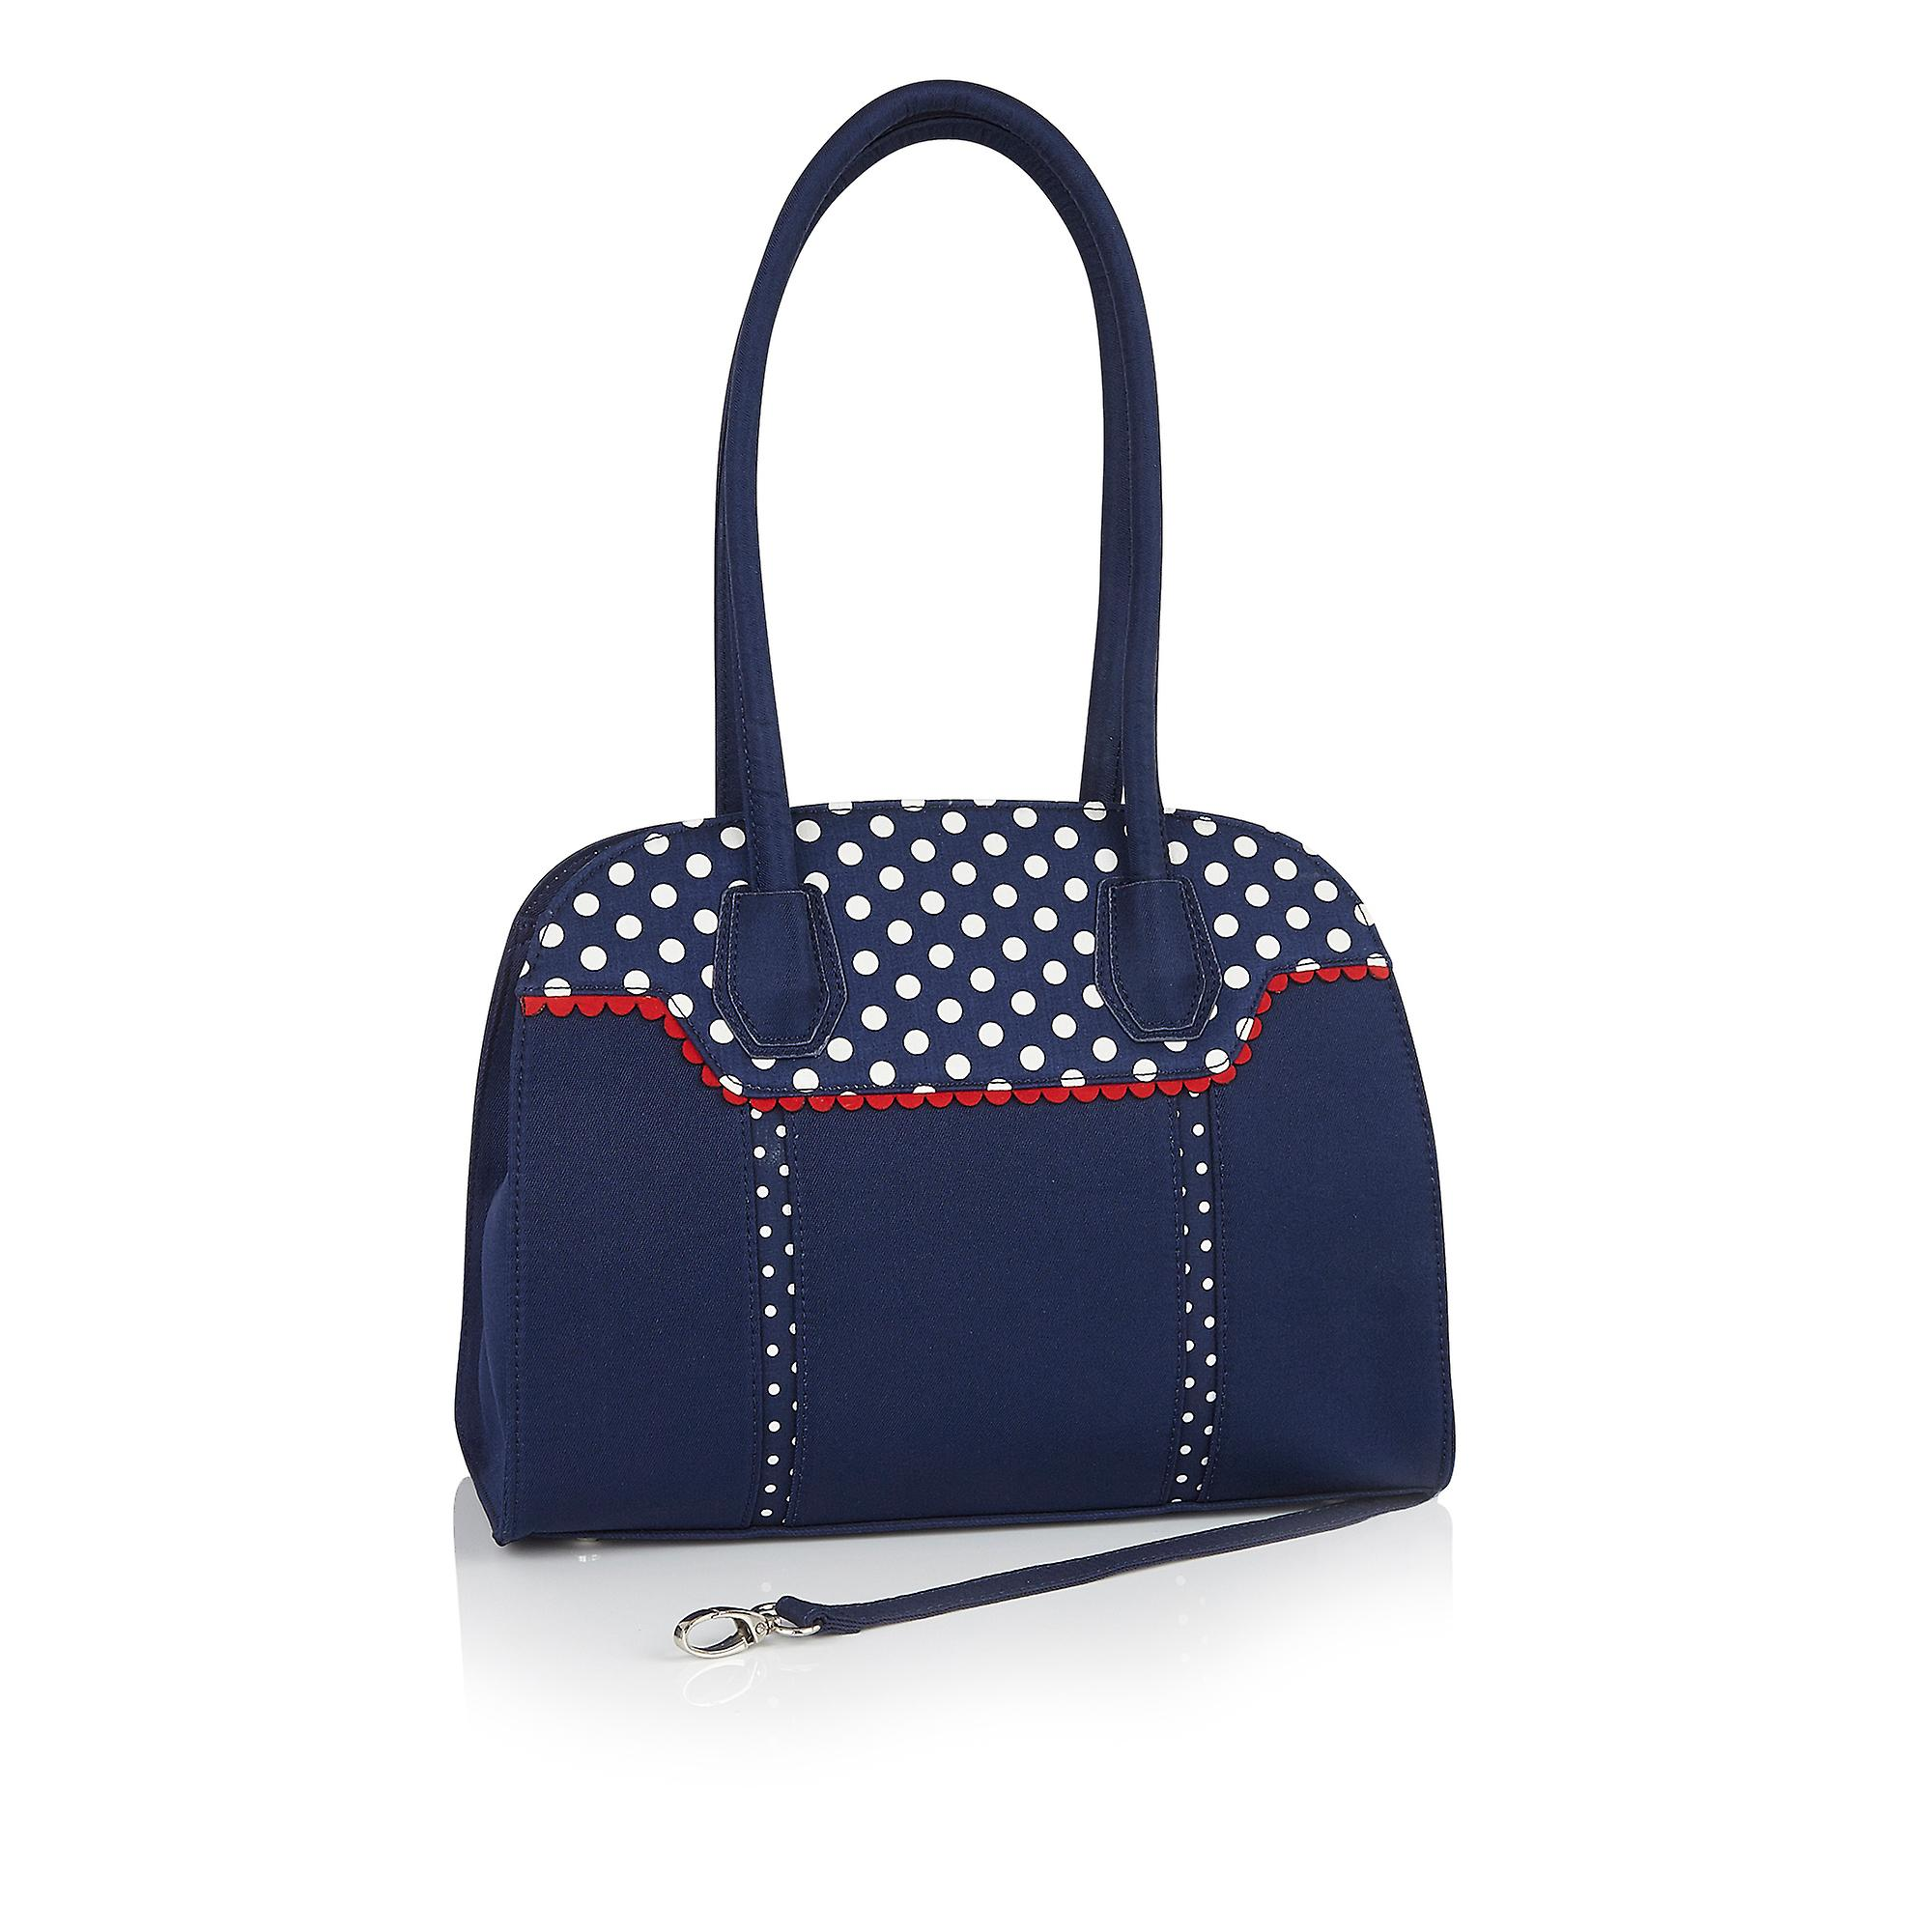 Ruby Shoo Aisha Navy Ribbon Mary Jane Booties et Matching Montpellier Bag - Remise particulière